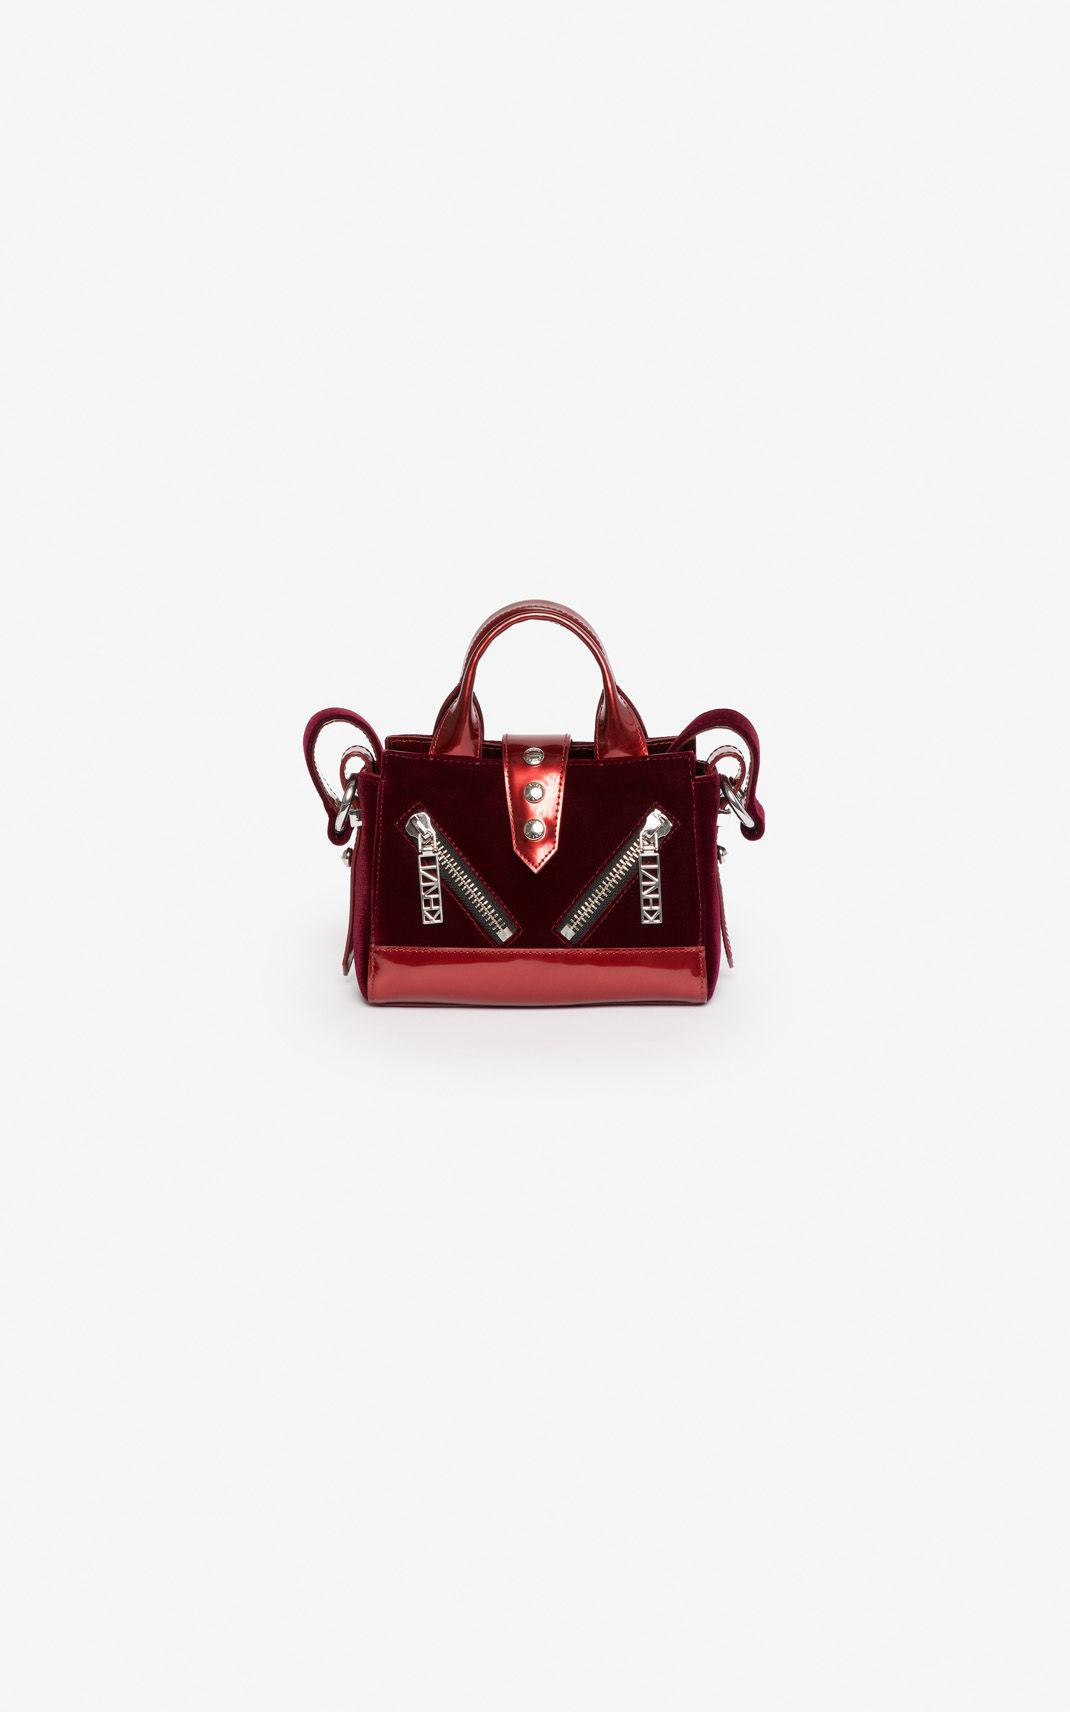 84d5bc91 Kenzo Micro Kalifornia Handbag 'holiday Capsule' in Red - Lyst